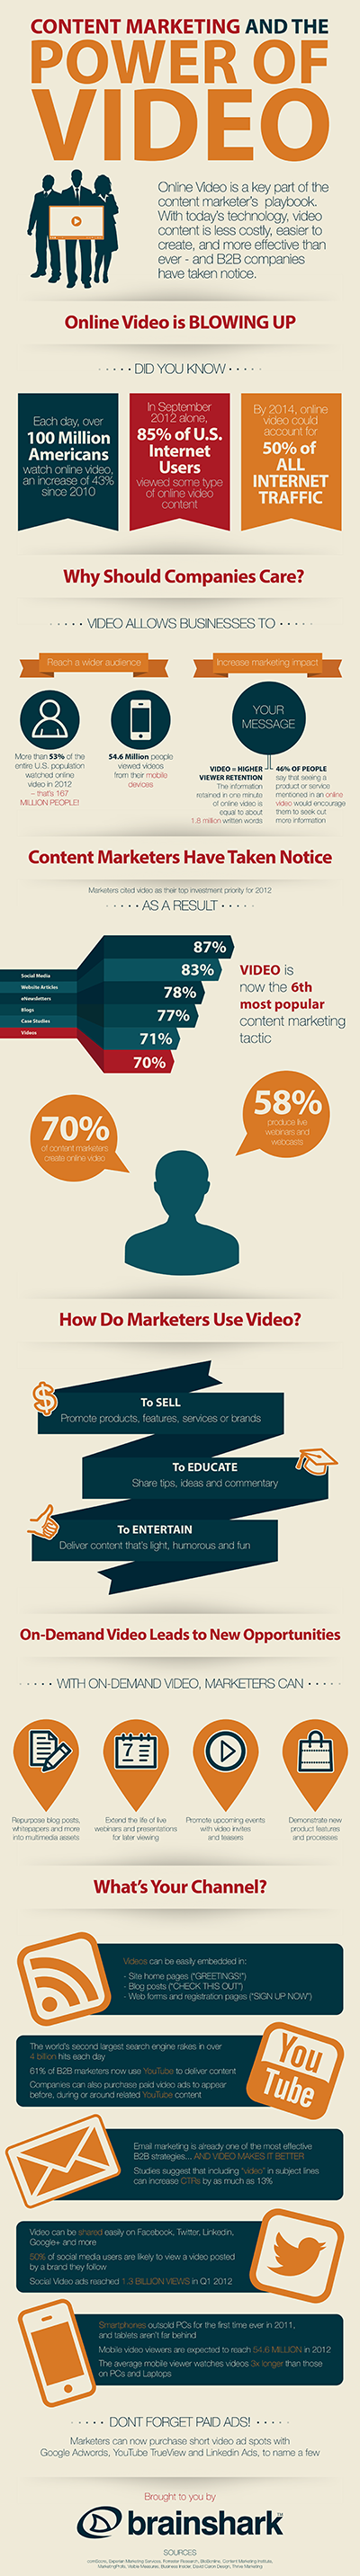 Infographic the Power of Video